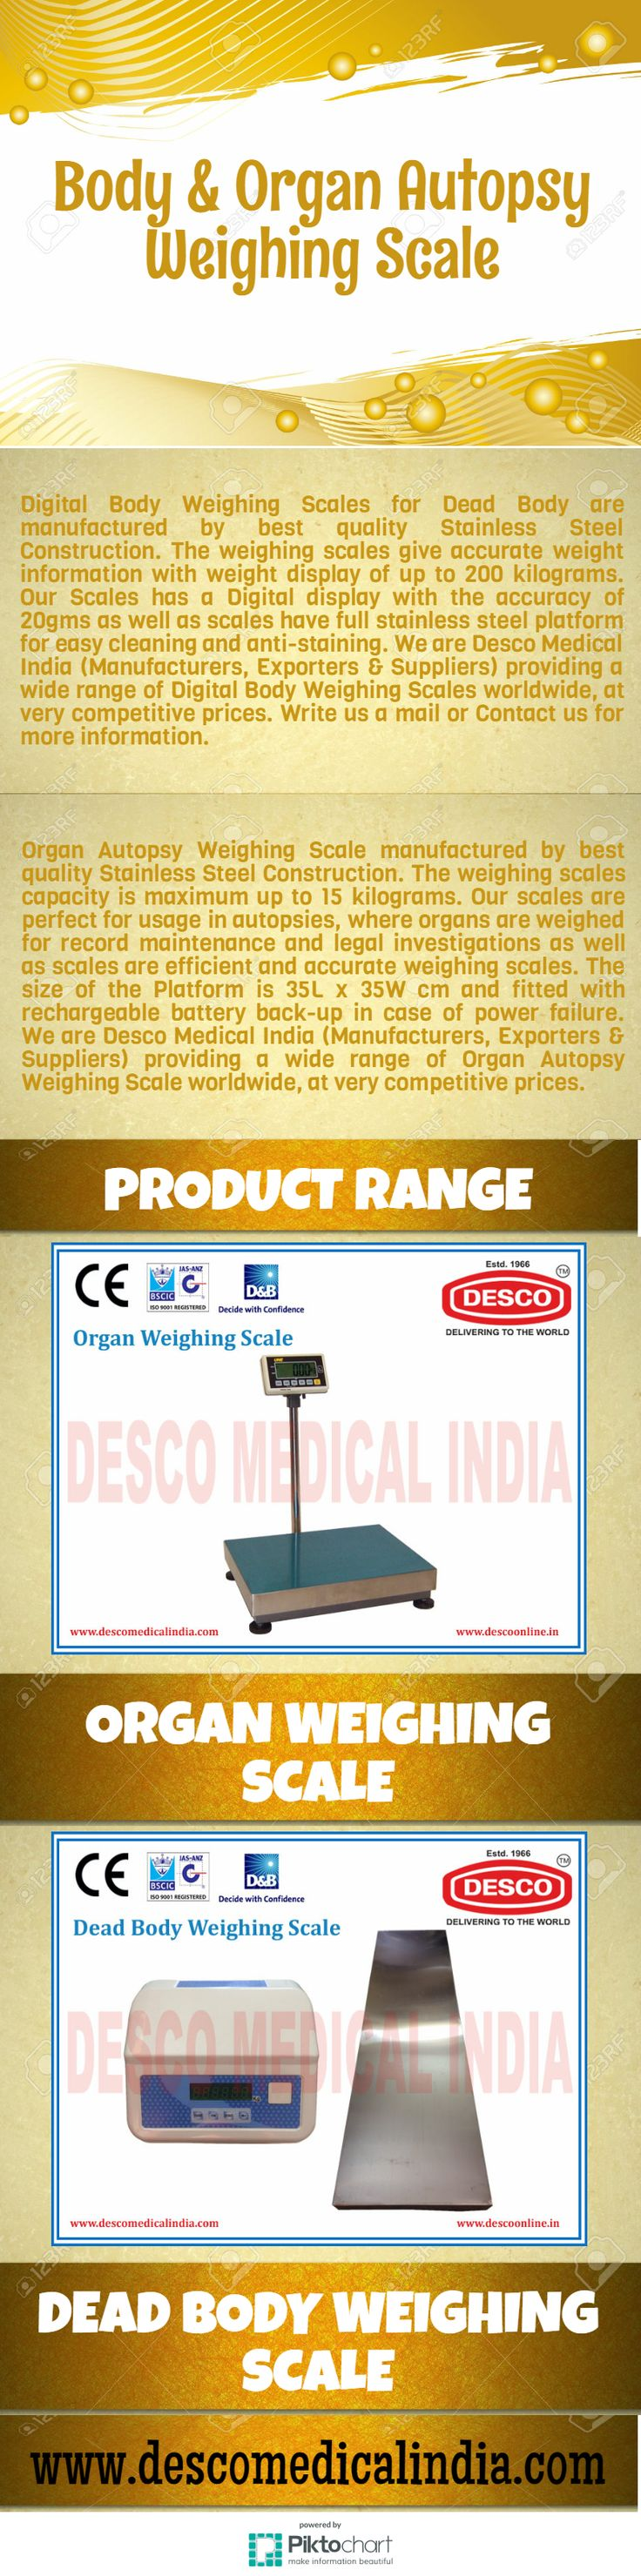 Digital Body Weighing Scales for Dead Body are manufactured by best quality Stainless Steel Construction.